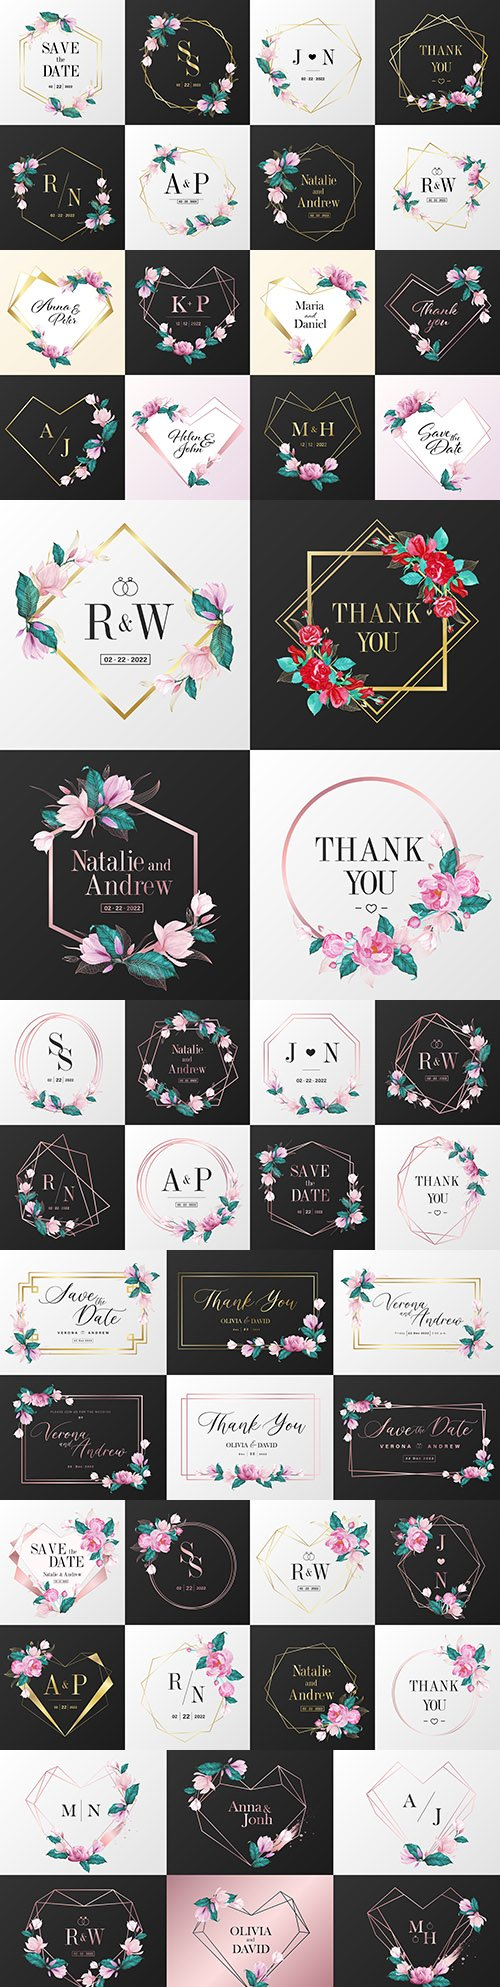 Monogram with flowers wedding watercolor logo with gold frame